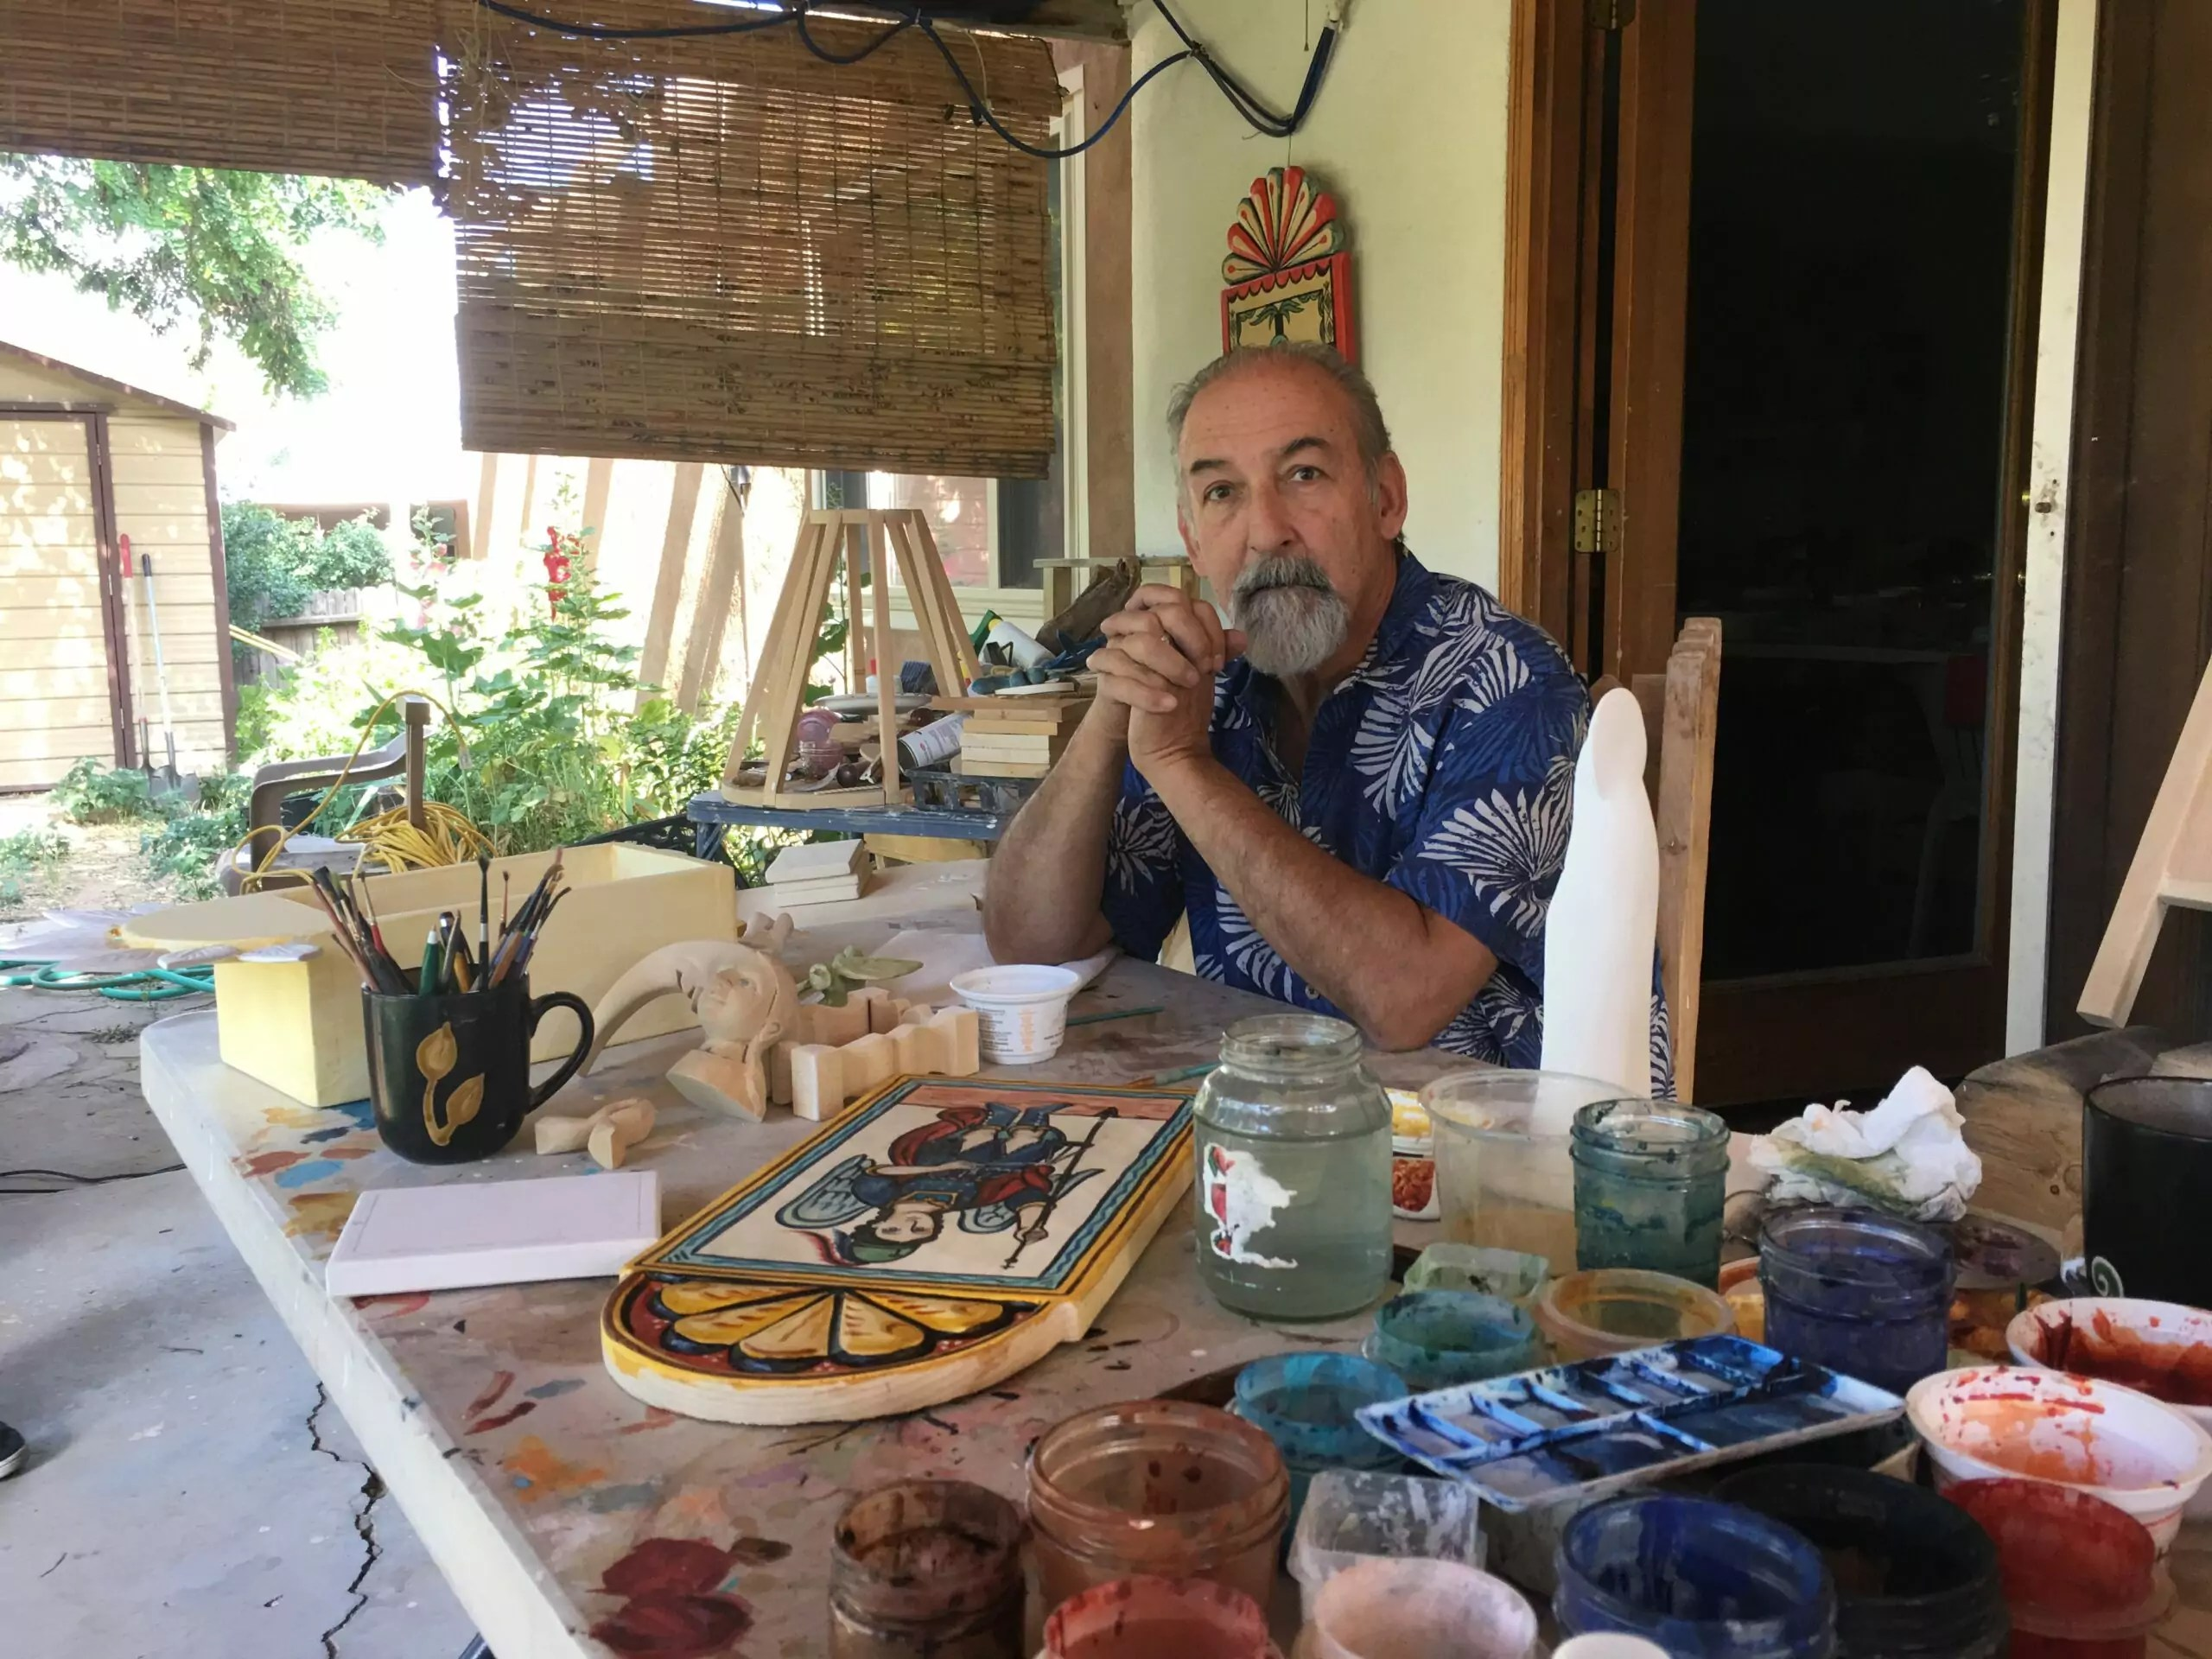 A man sits down at a table covered in art supplies.